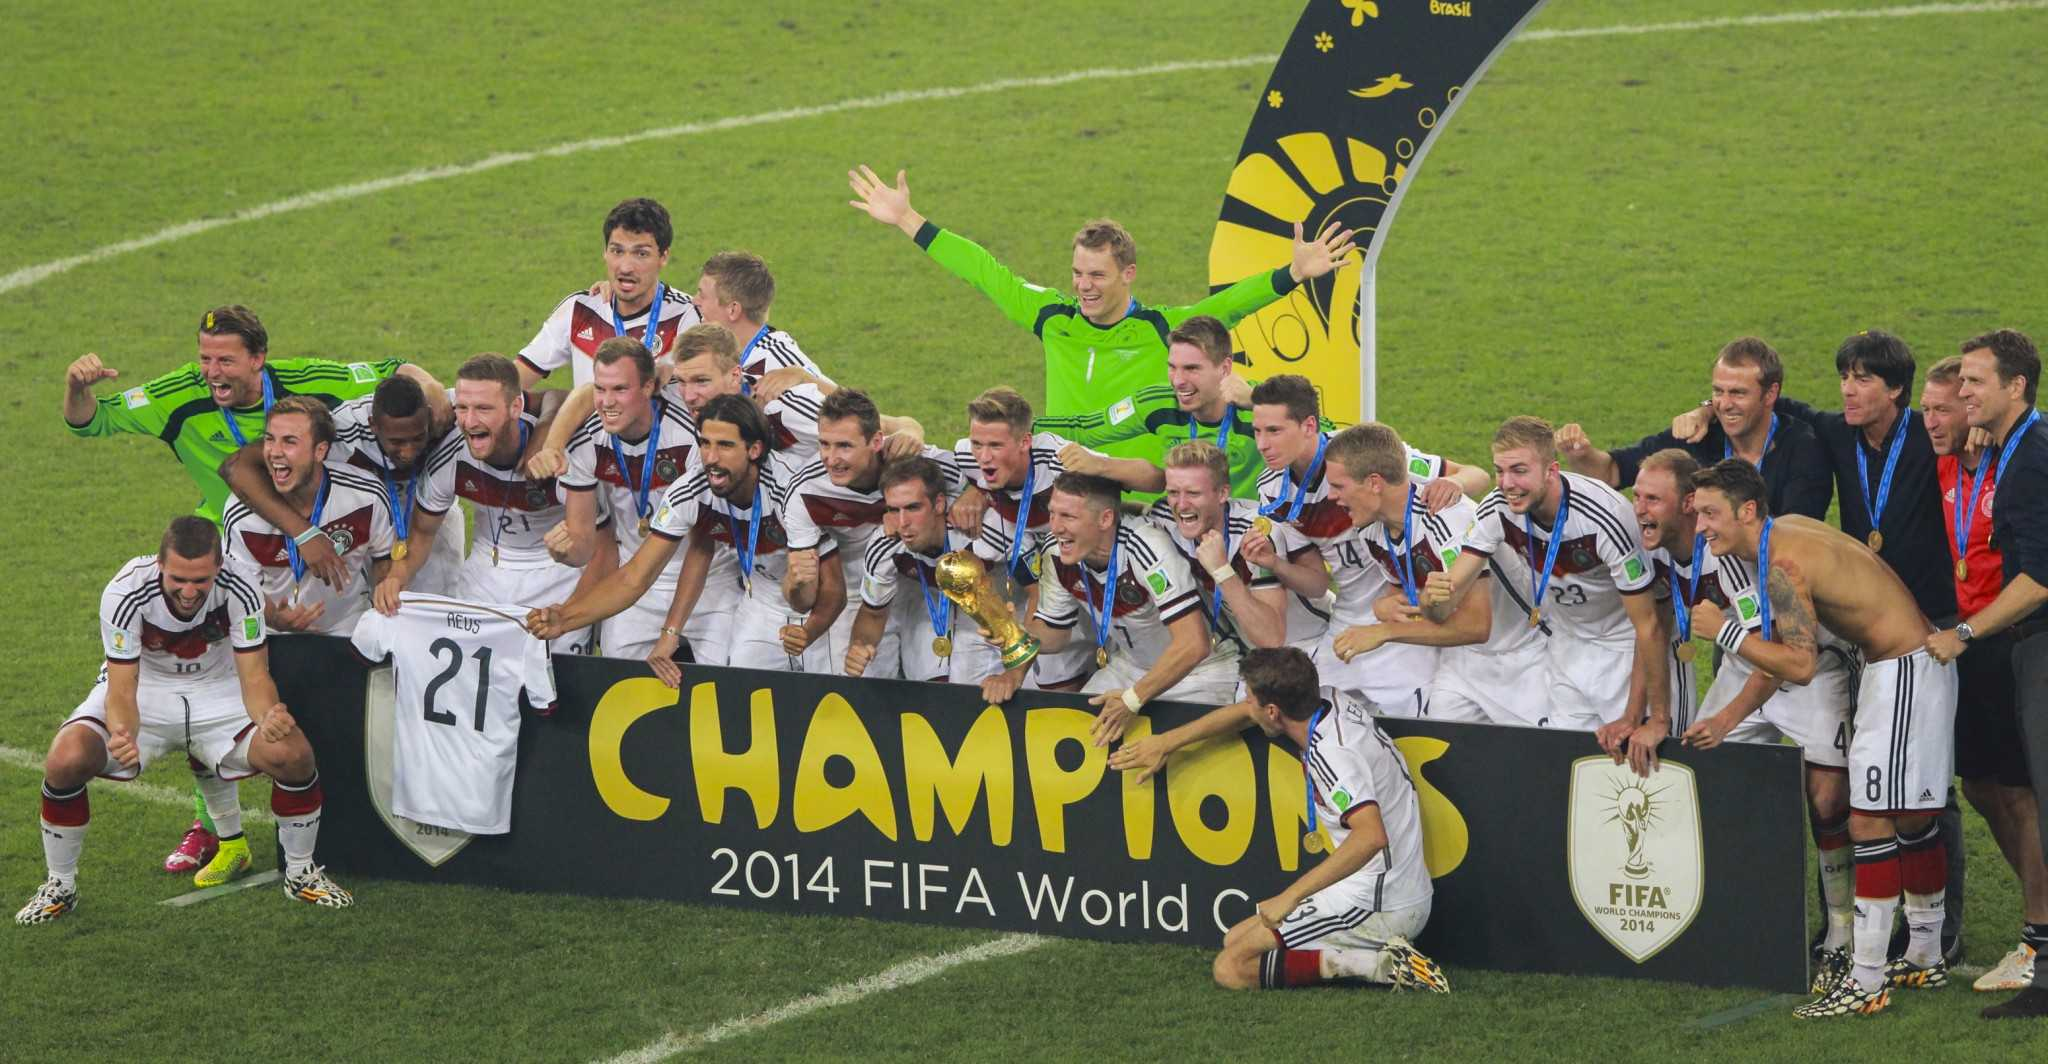 Germany crowned as the 2014 FIFA World Cup champion (Photo courtesy of Wikipedia)